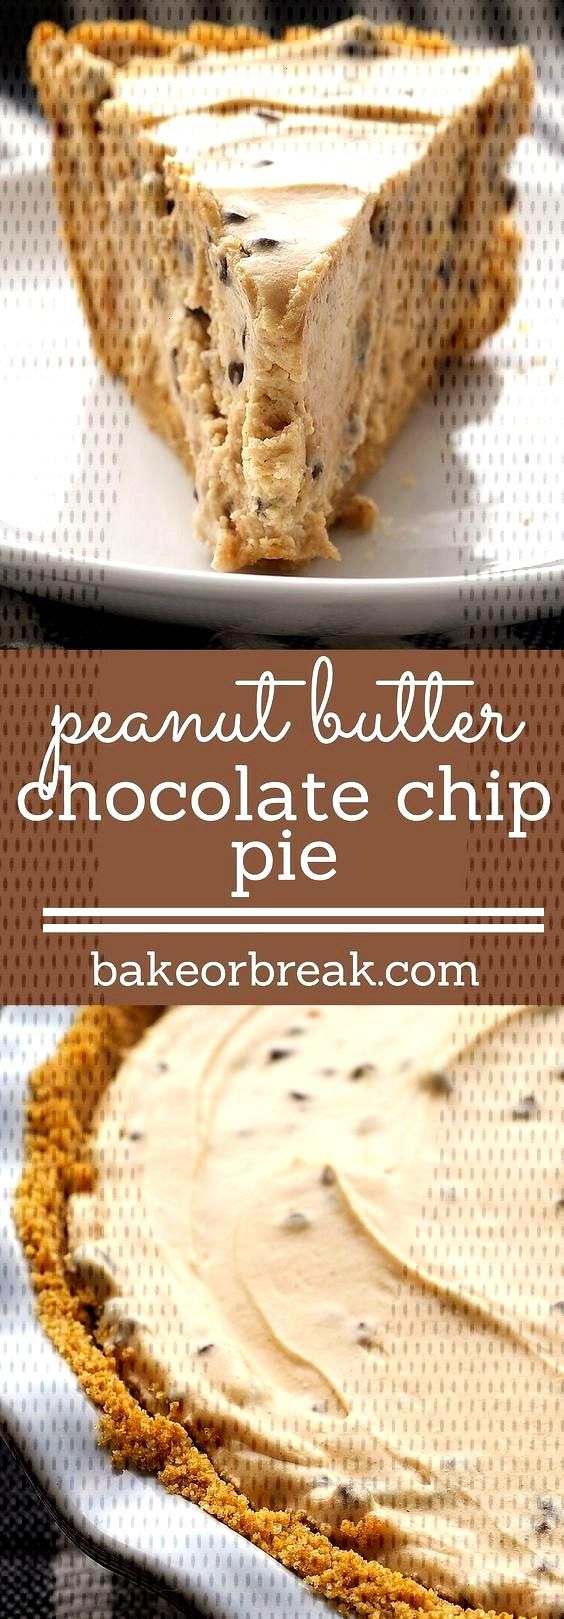 Food Photography: Peanut Butter-Chocolate Chip Pie